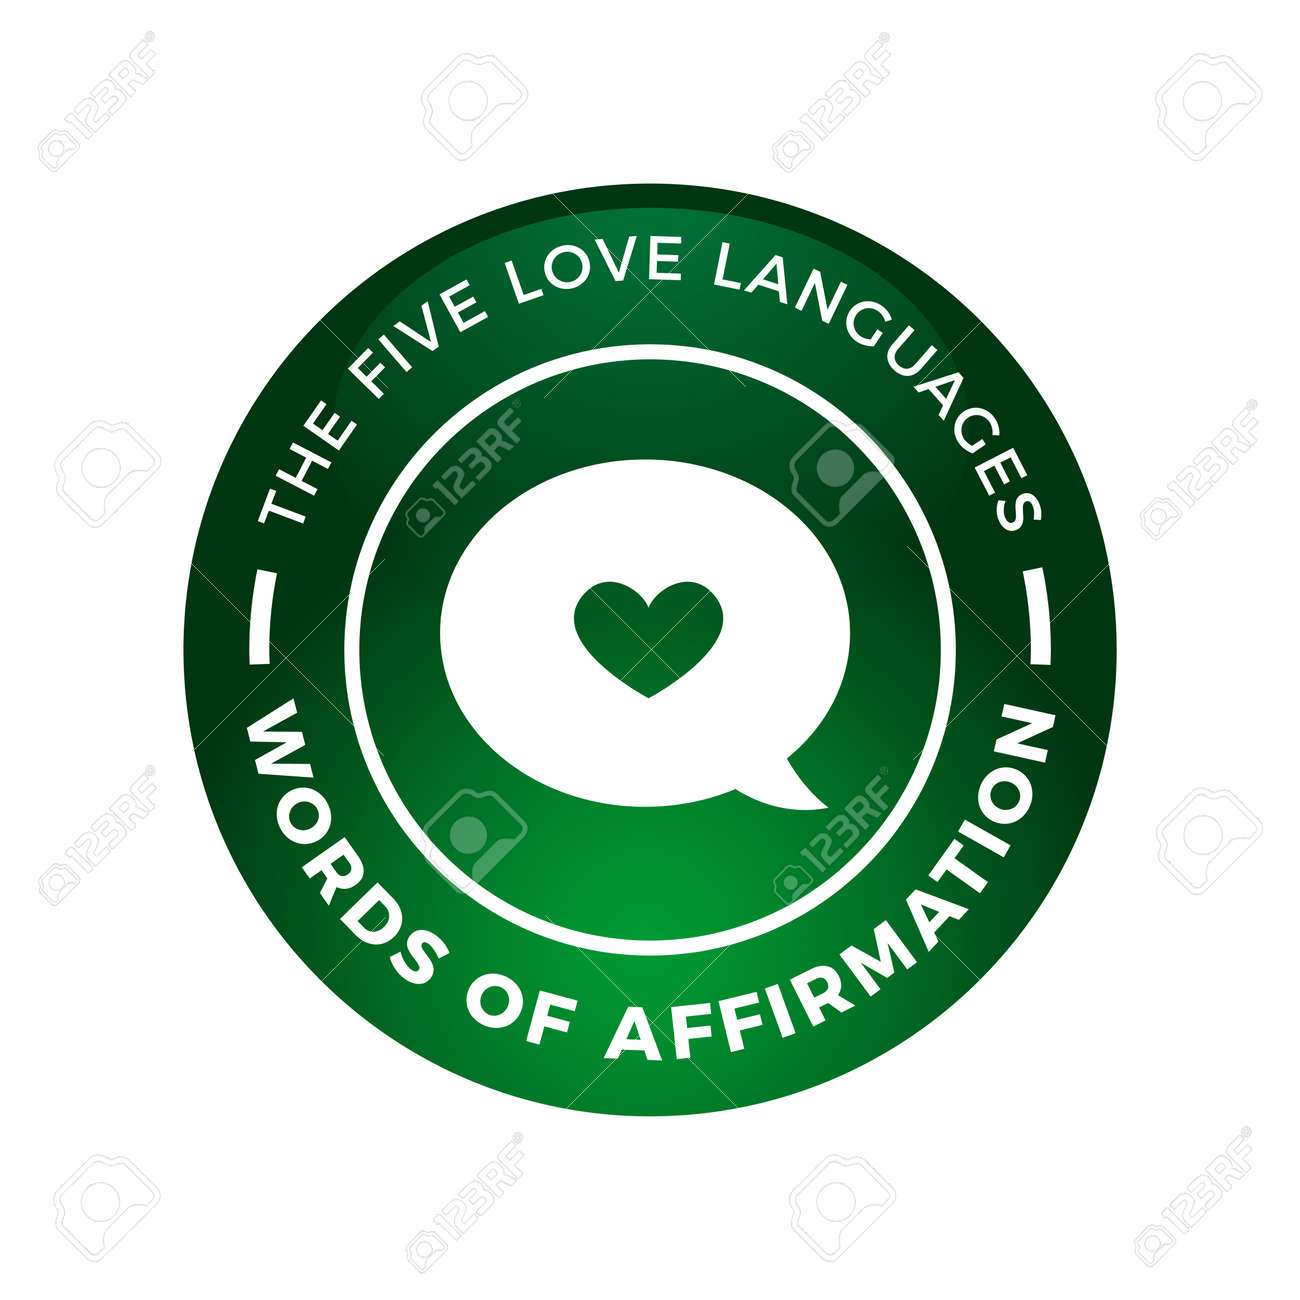 Love words language affirmation of Words of